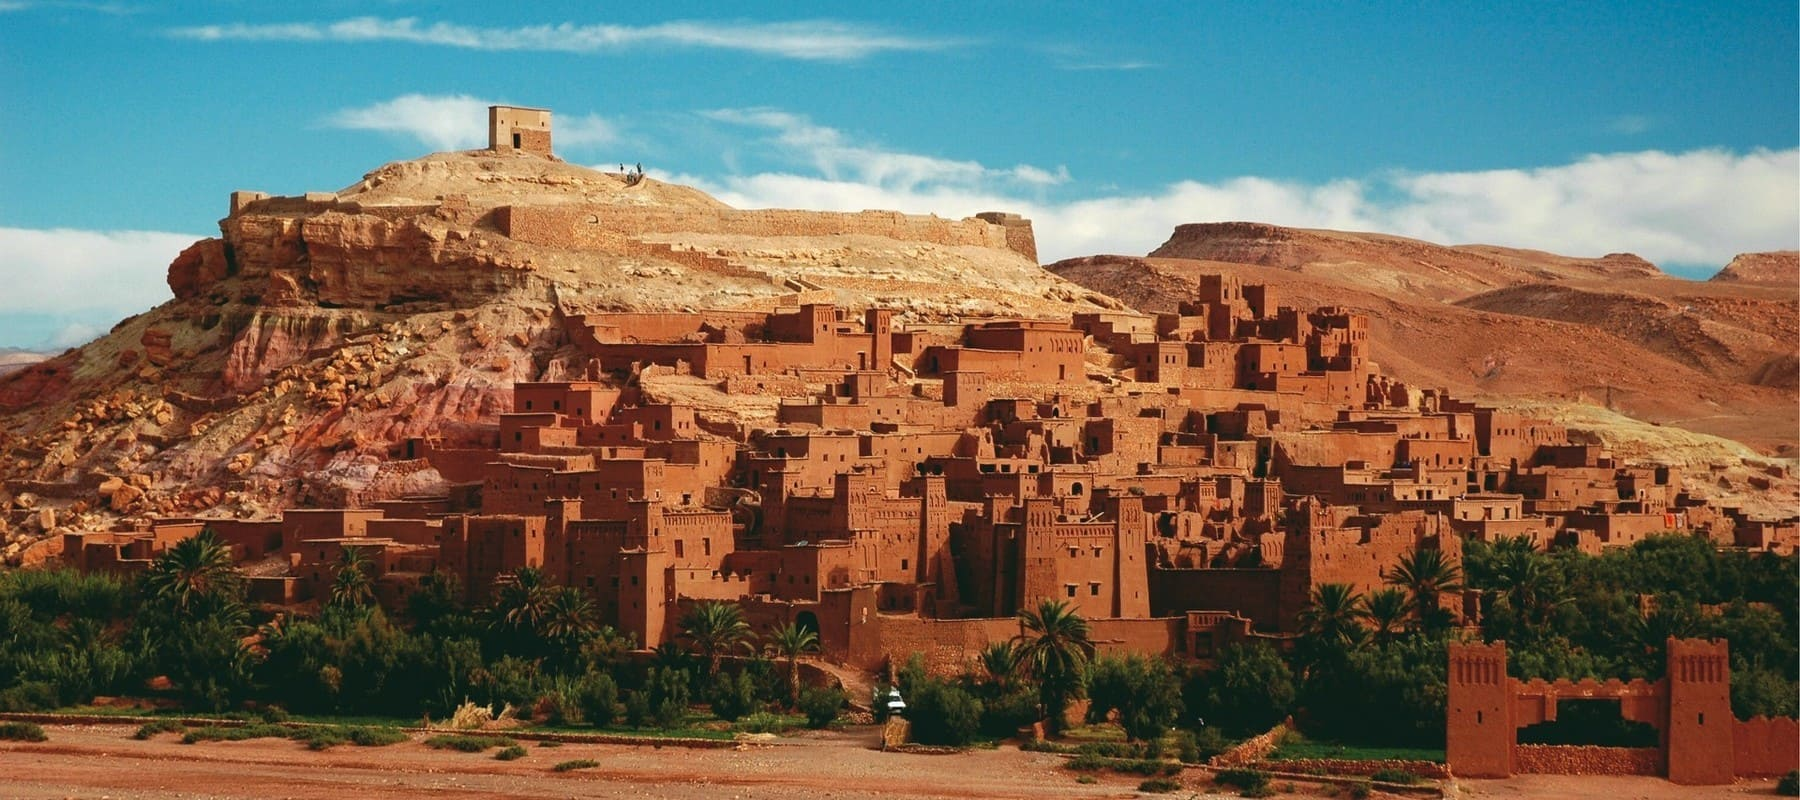 Best Morocco tours ,Morocco and Egypt Tours – Epic Journey, Best morocco tours, Imperial cities Morocco